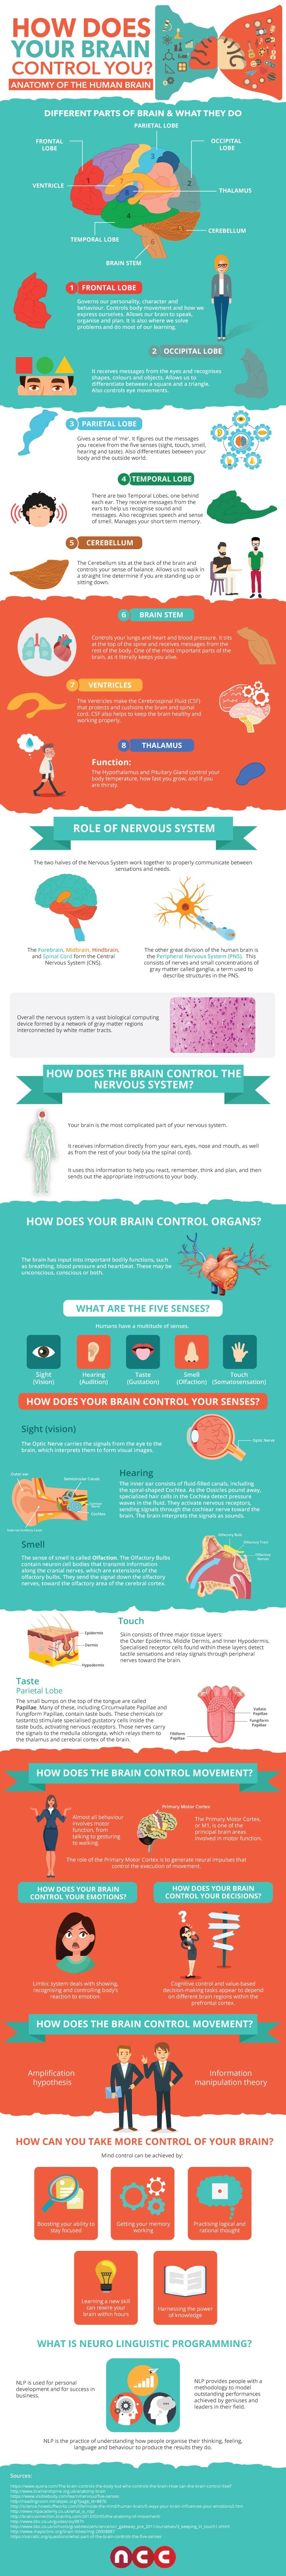 How Does Your Brain Control You?